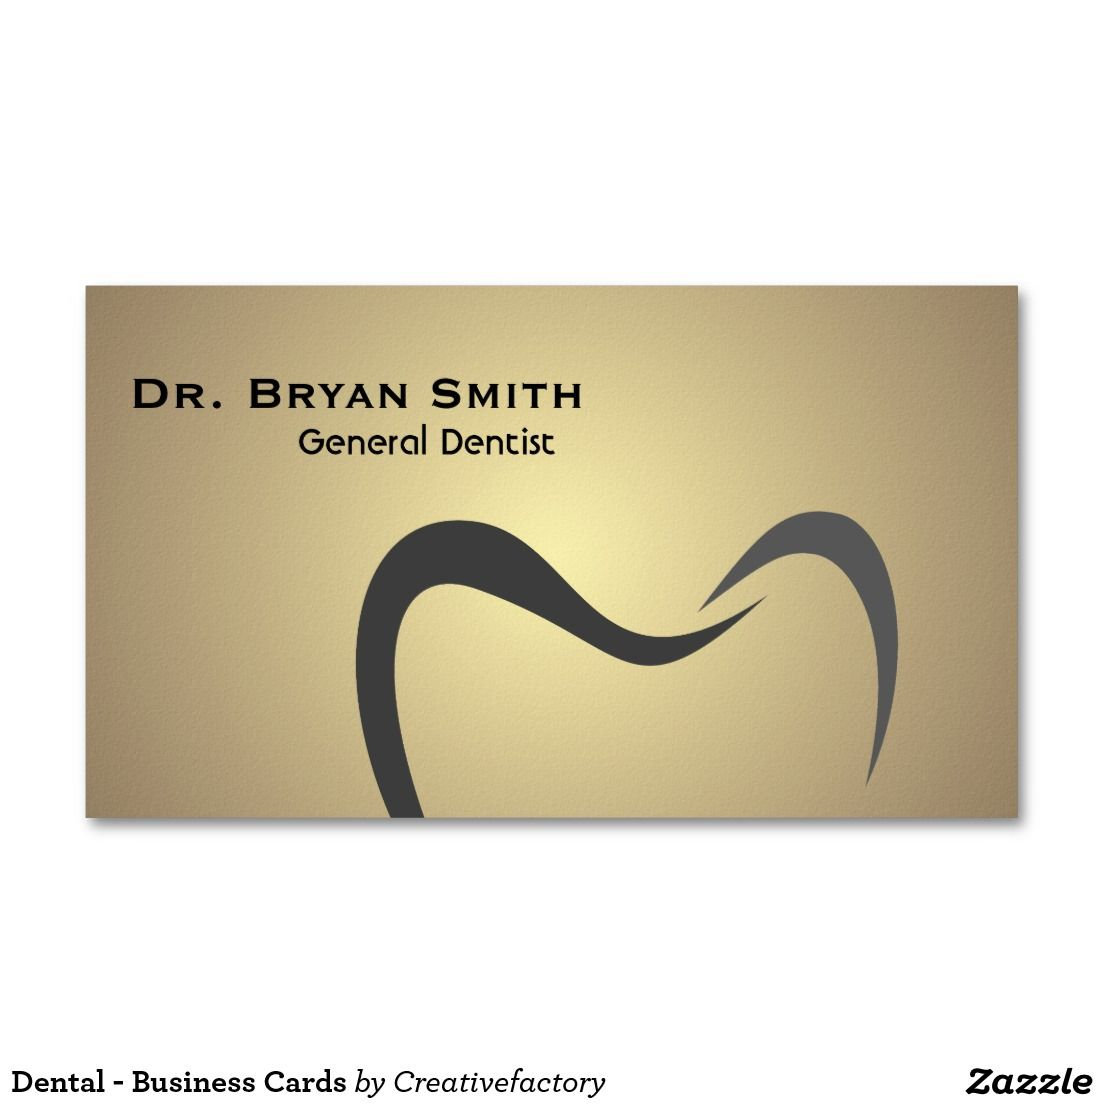 Dental - Business Cards | Dental business cards, Dental and ...